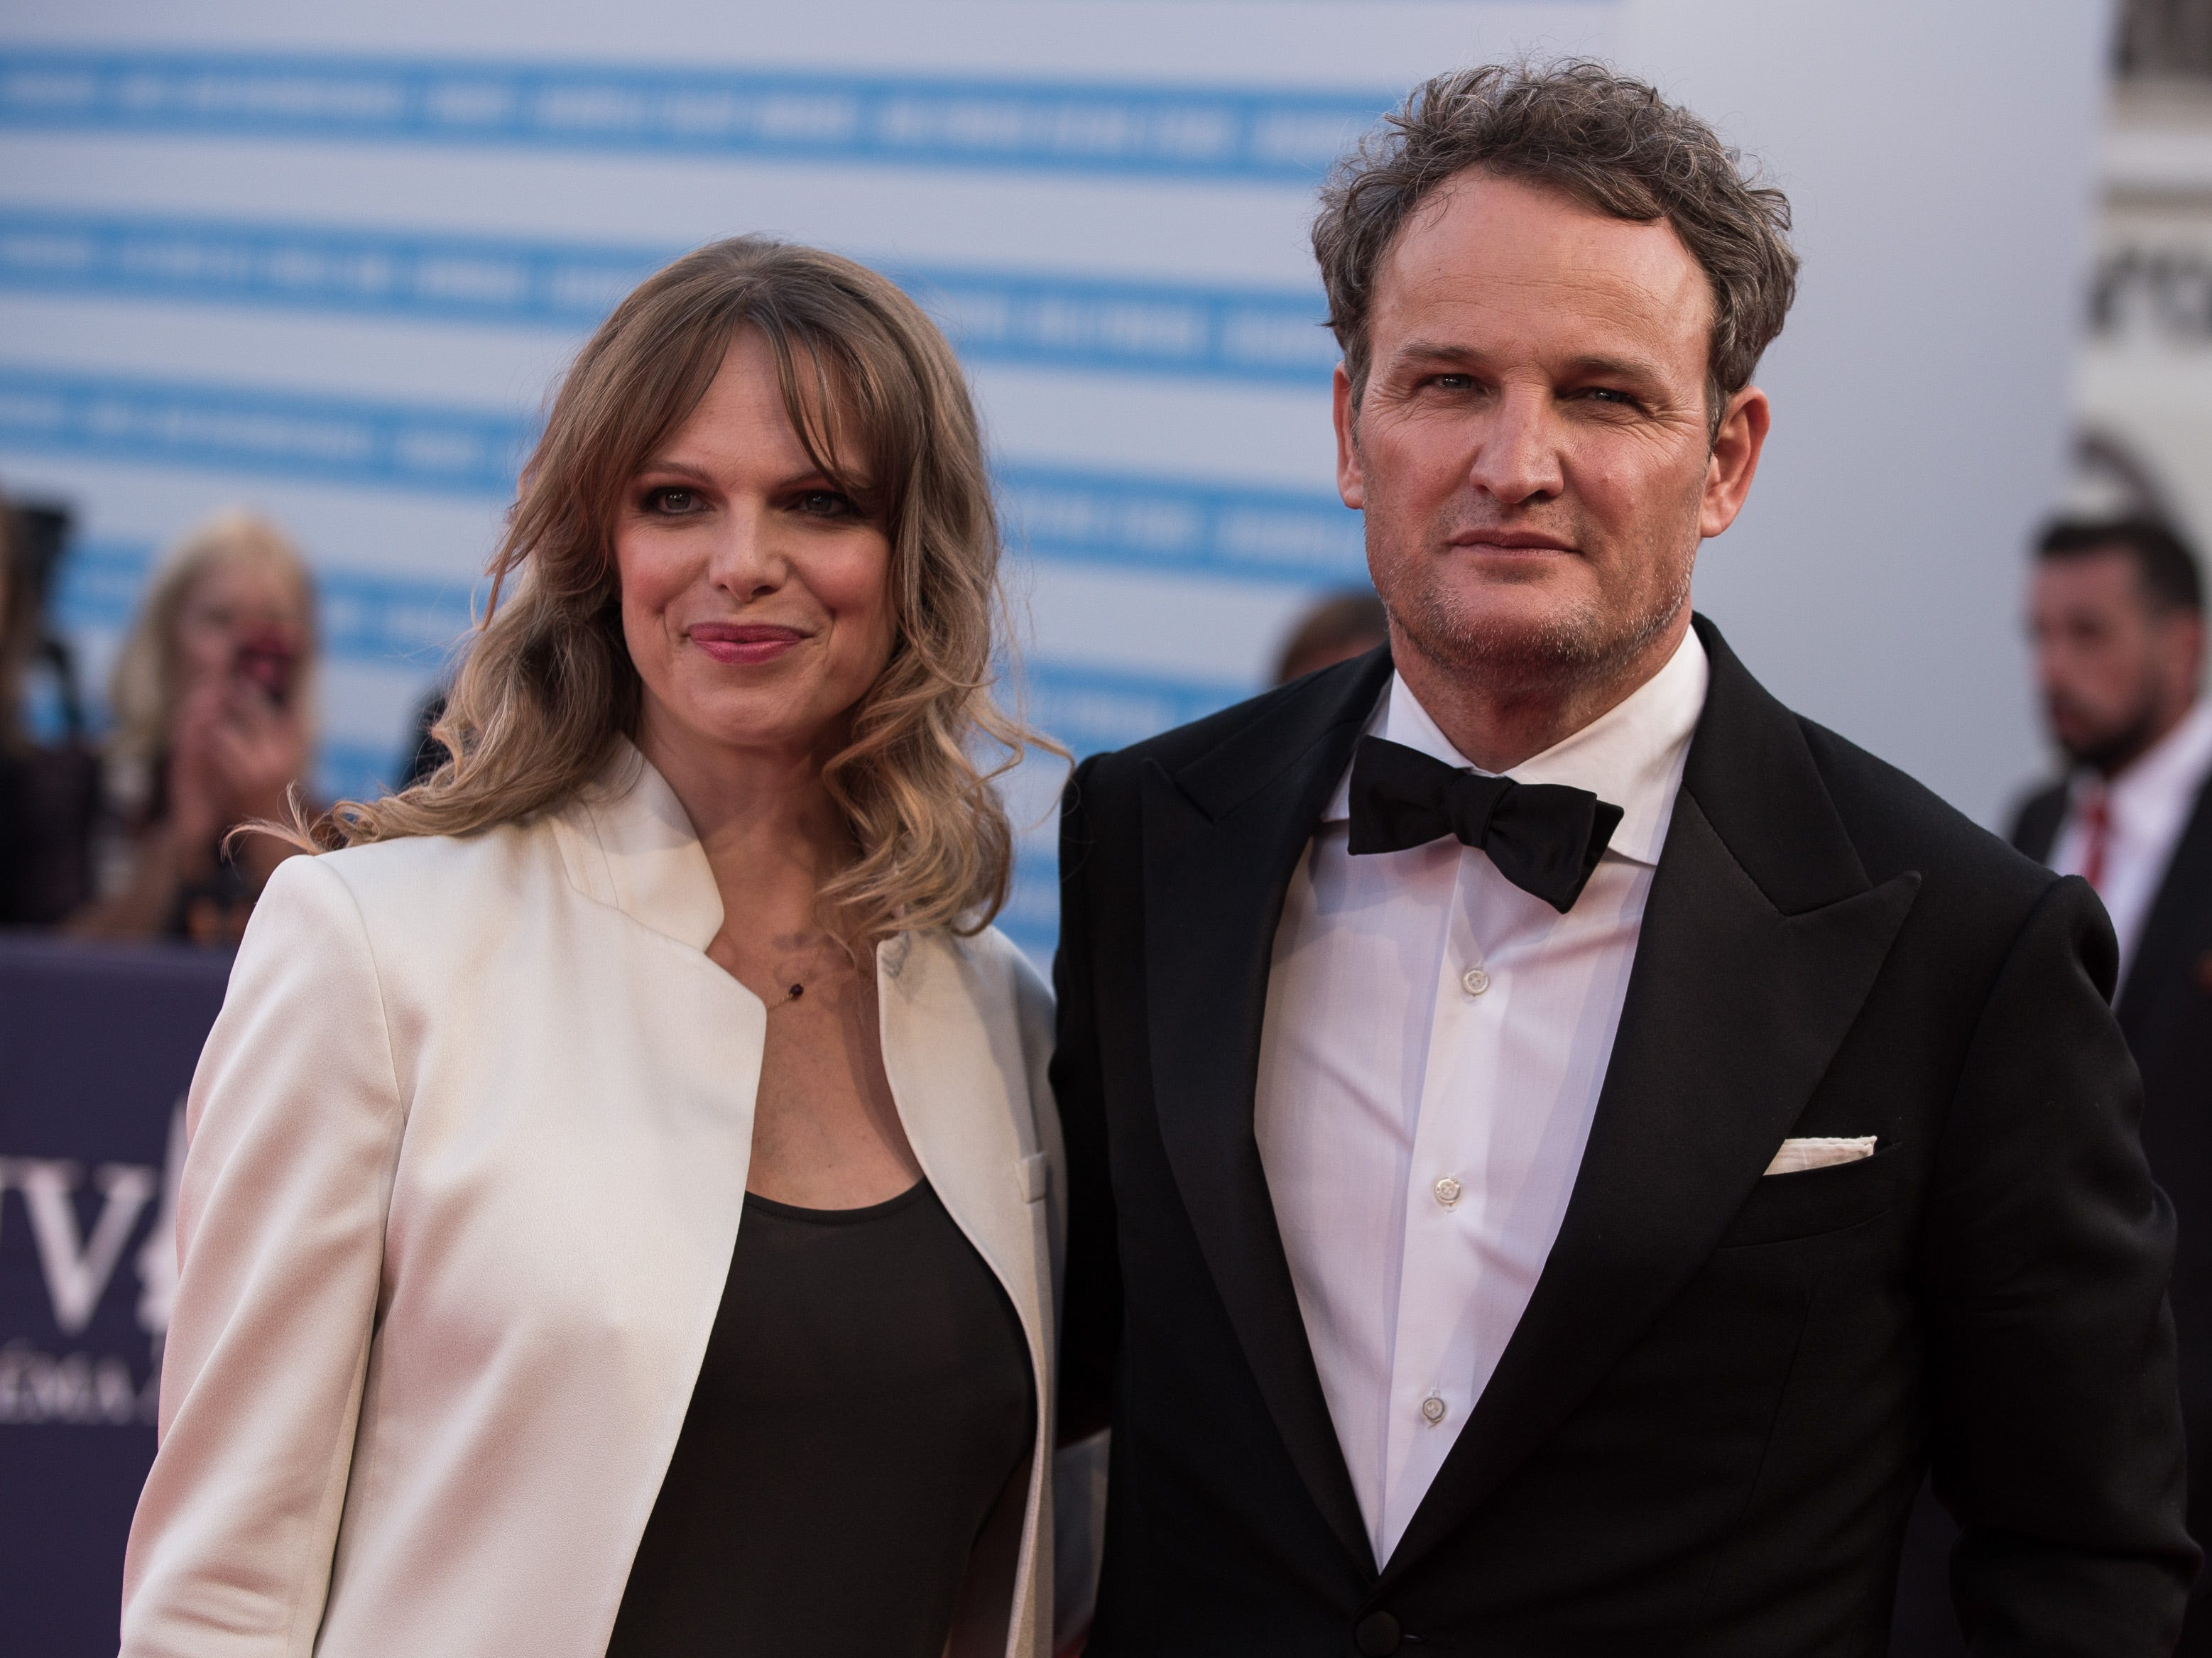 Jason Clarke and wife Cecile Breccia  before the opening ceremony of the  Deauville US Film Festival on Aug. 31, 2018.